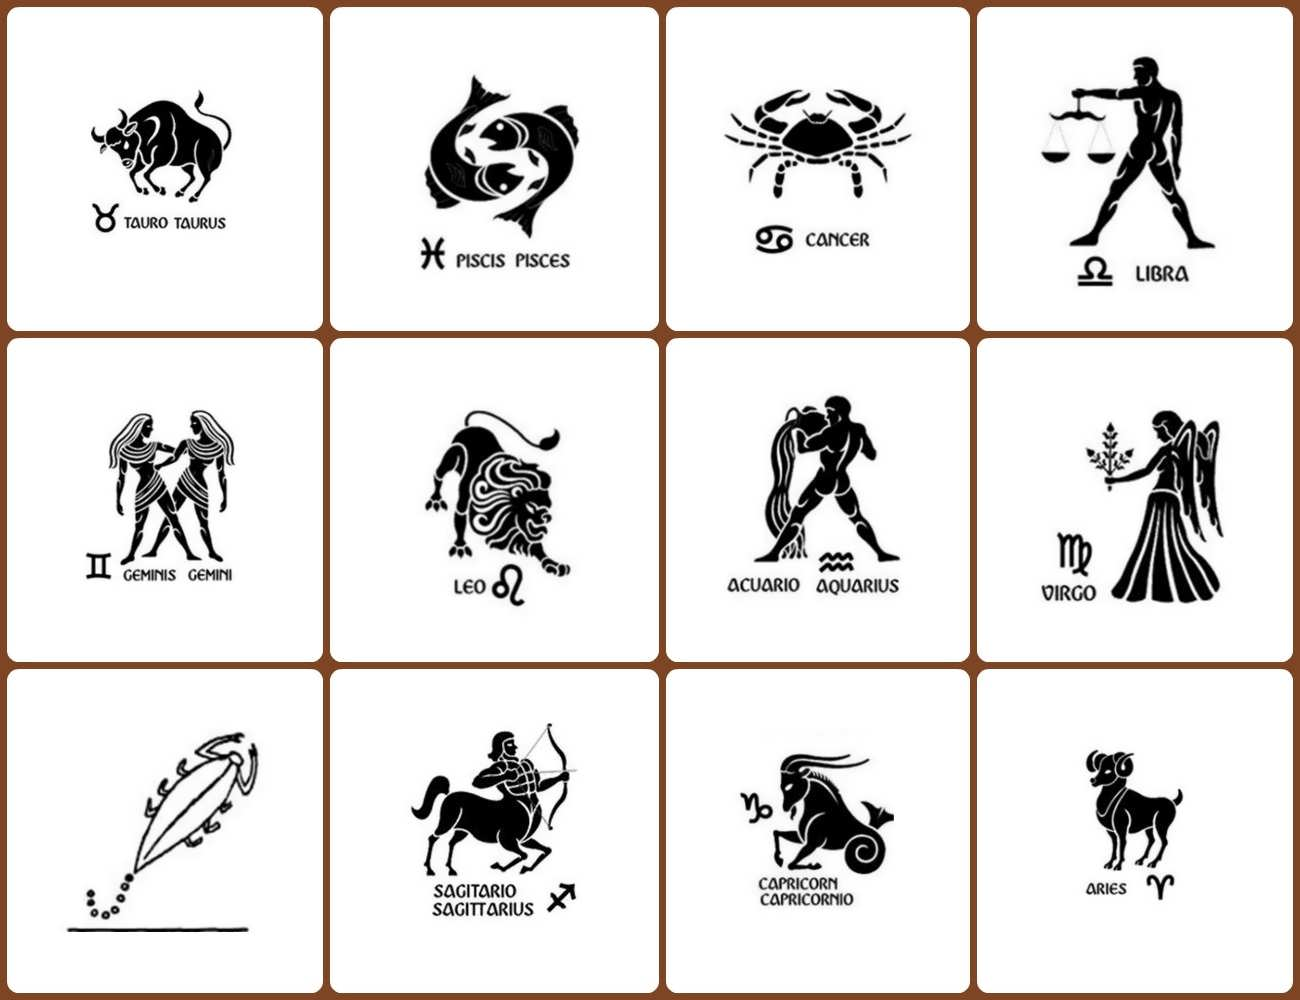 The zodiac,horoscope you read every day. do you believe that they control your life?-voxytalksy